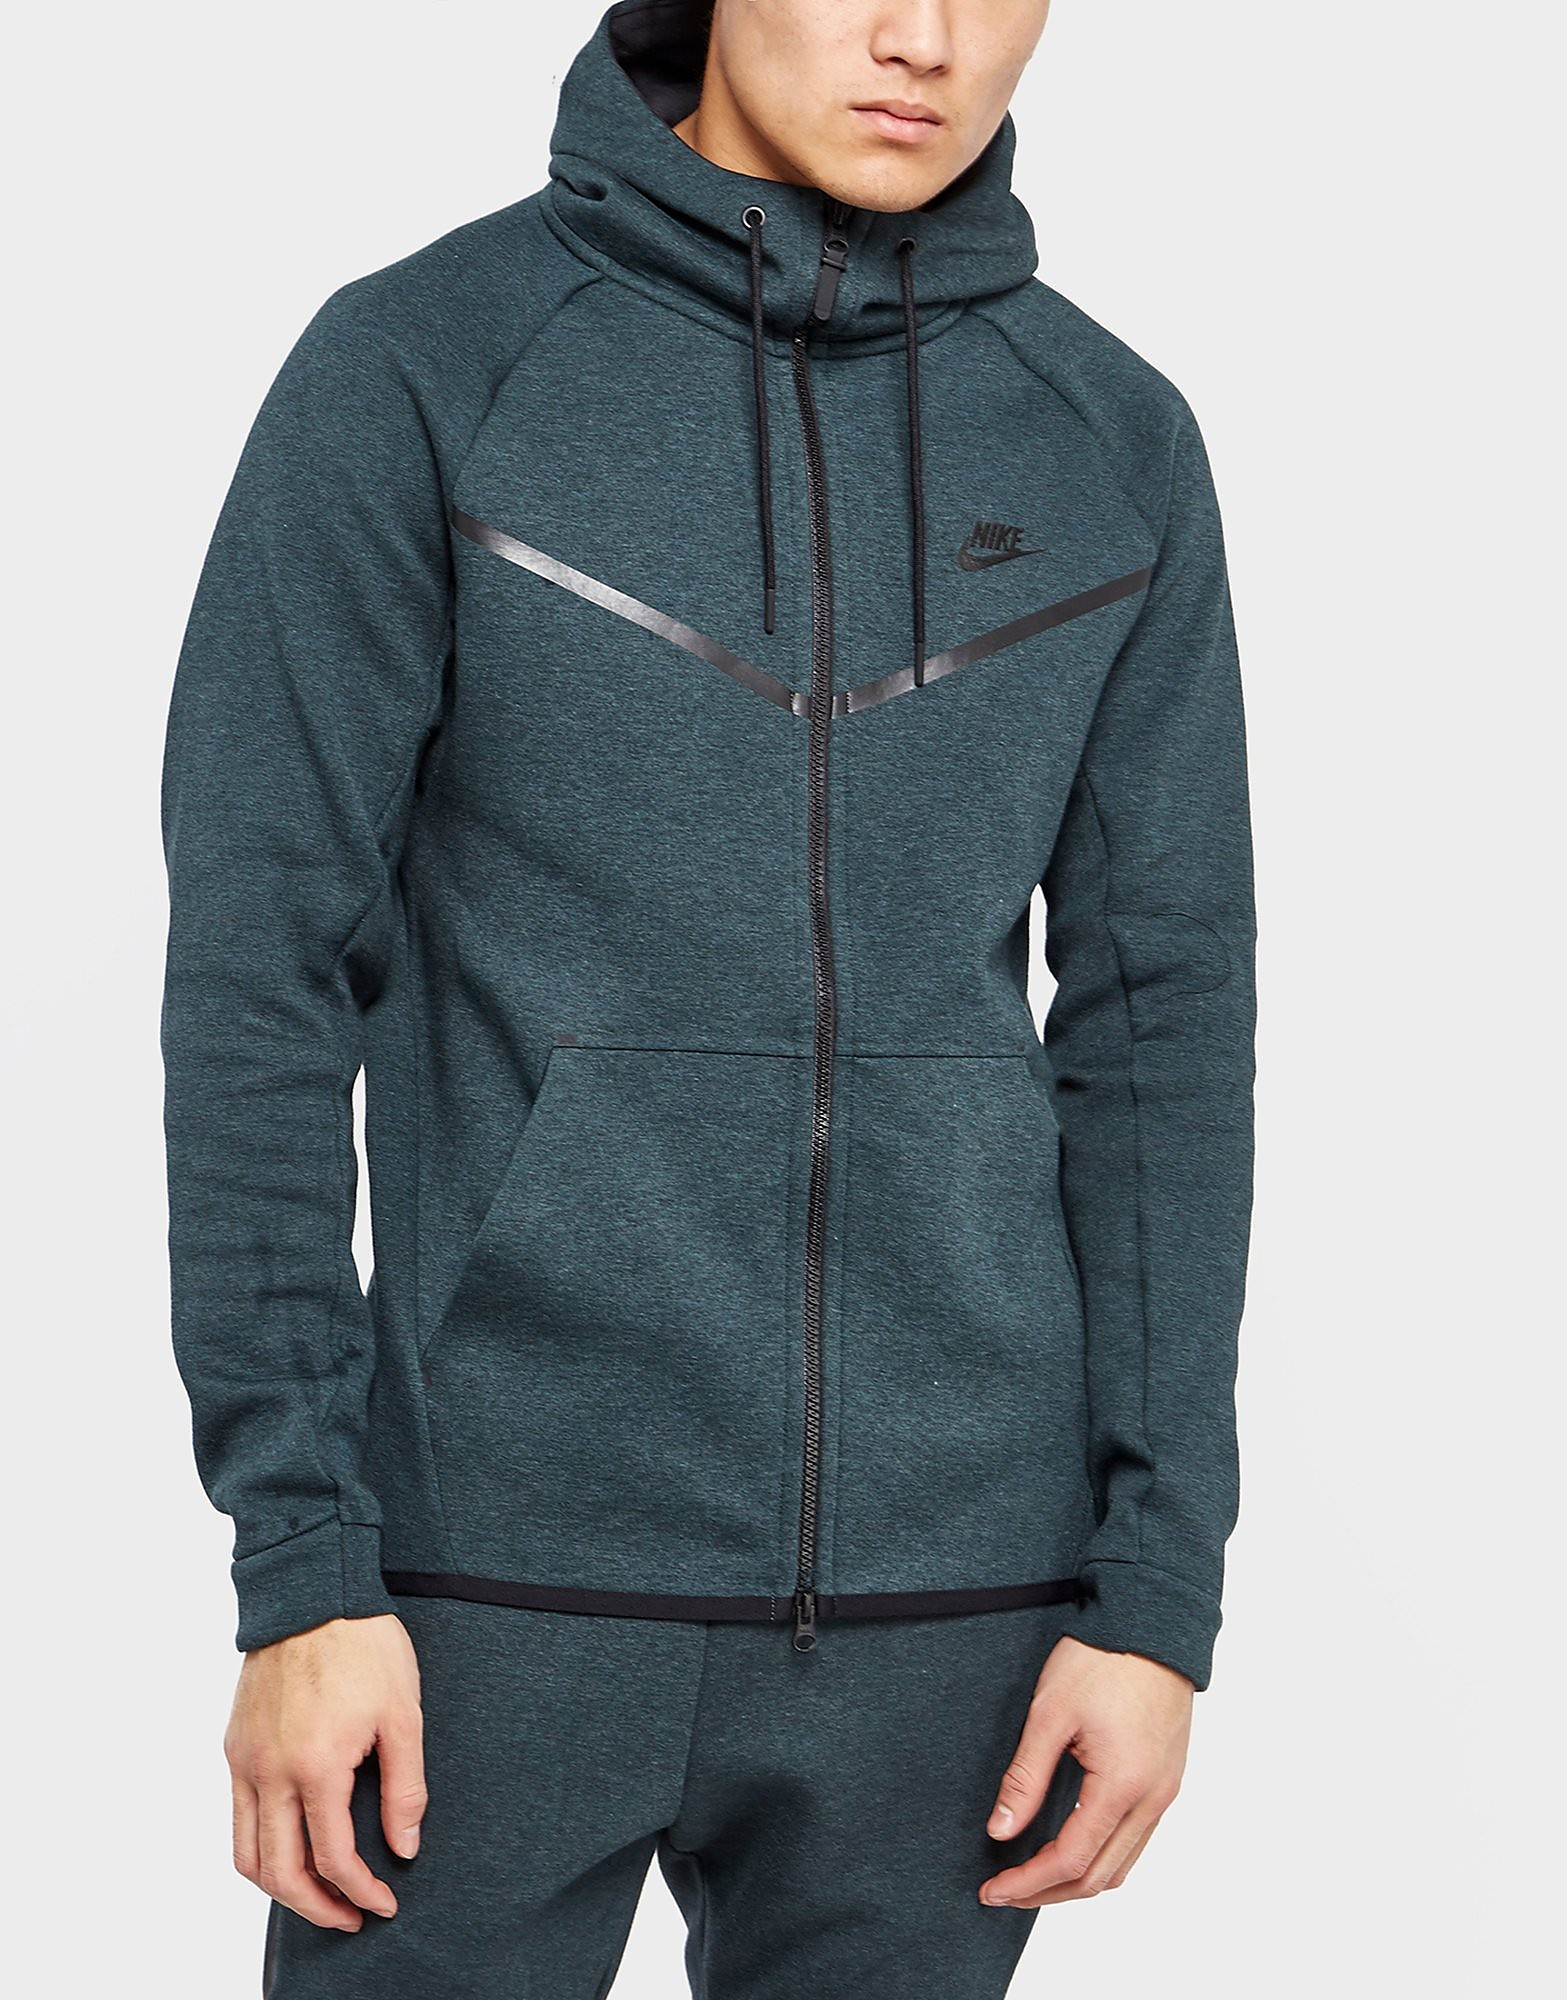 Nike Tech Fleece Windbreaker Hoody